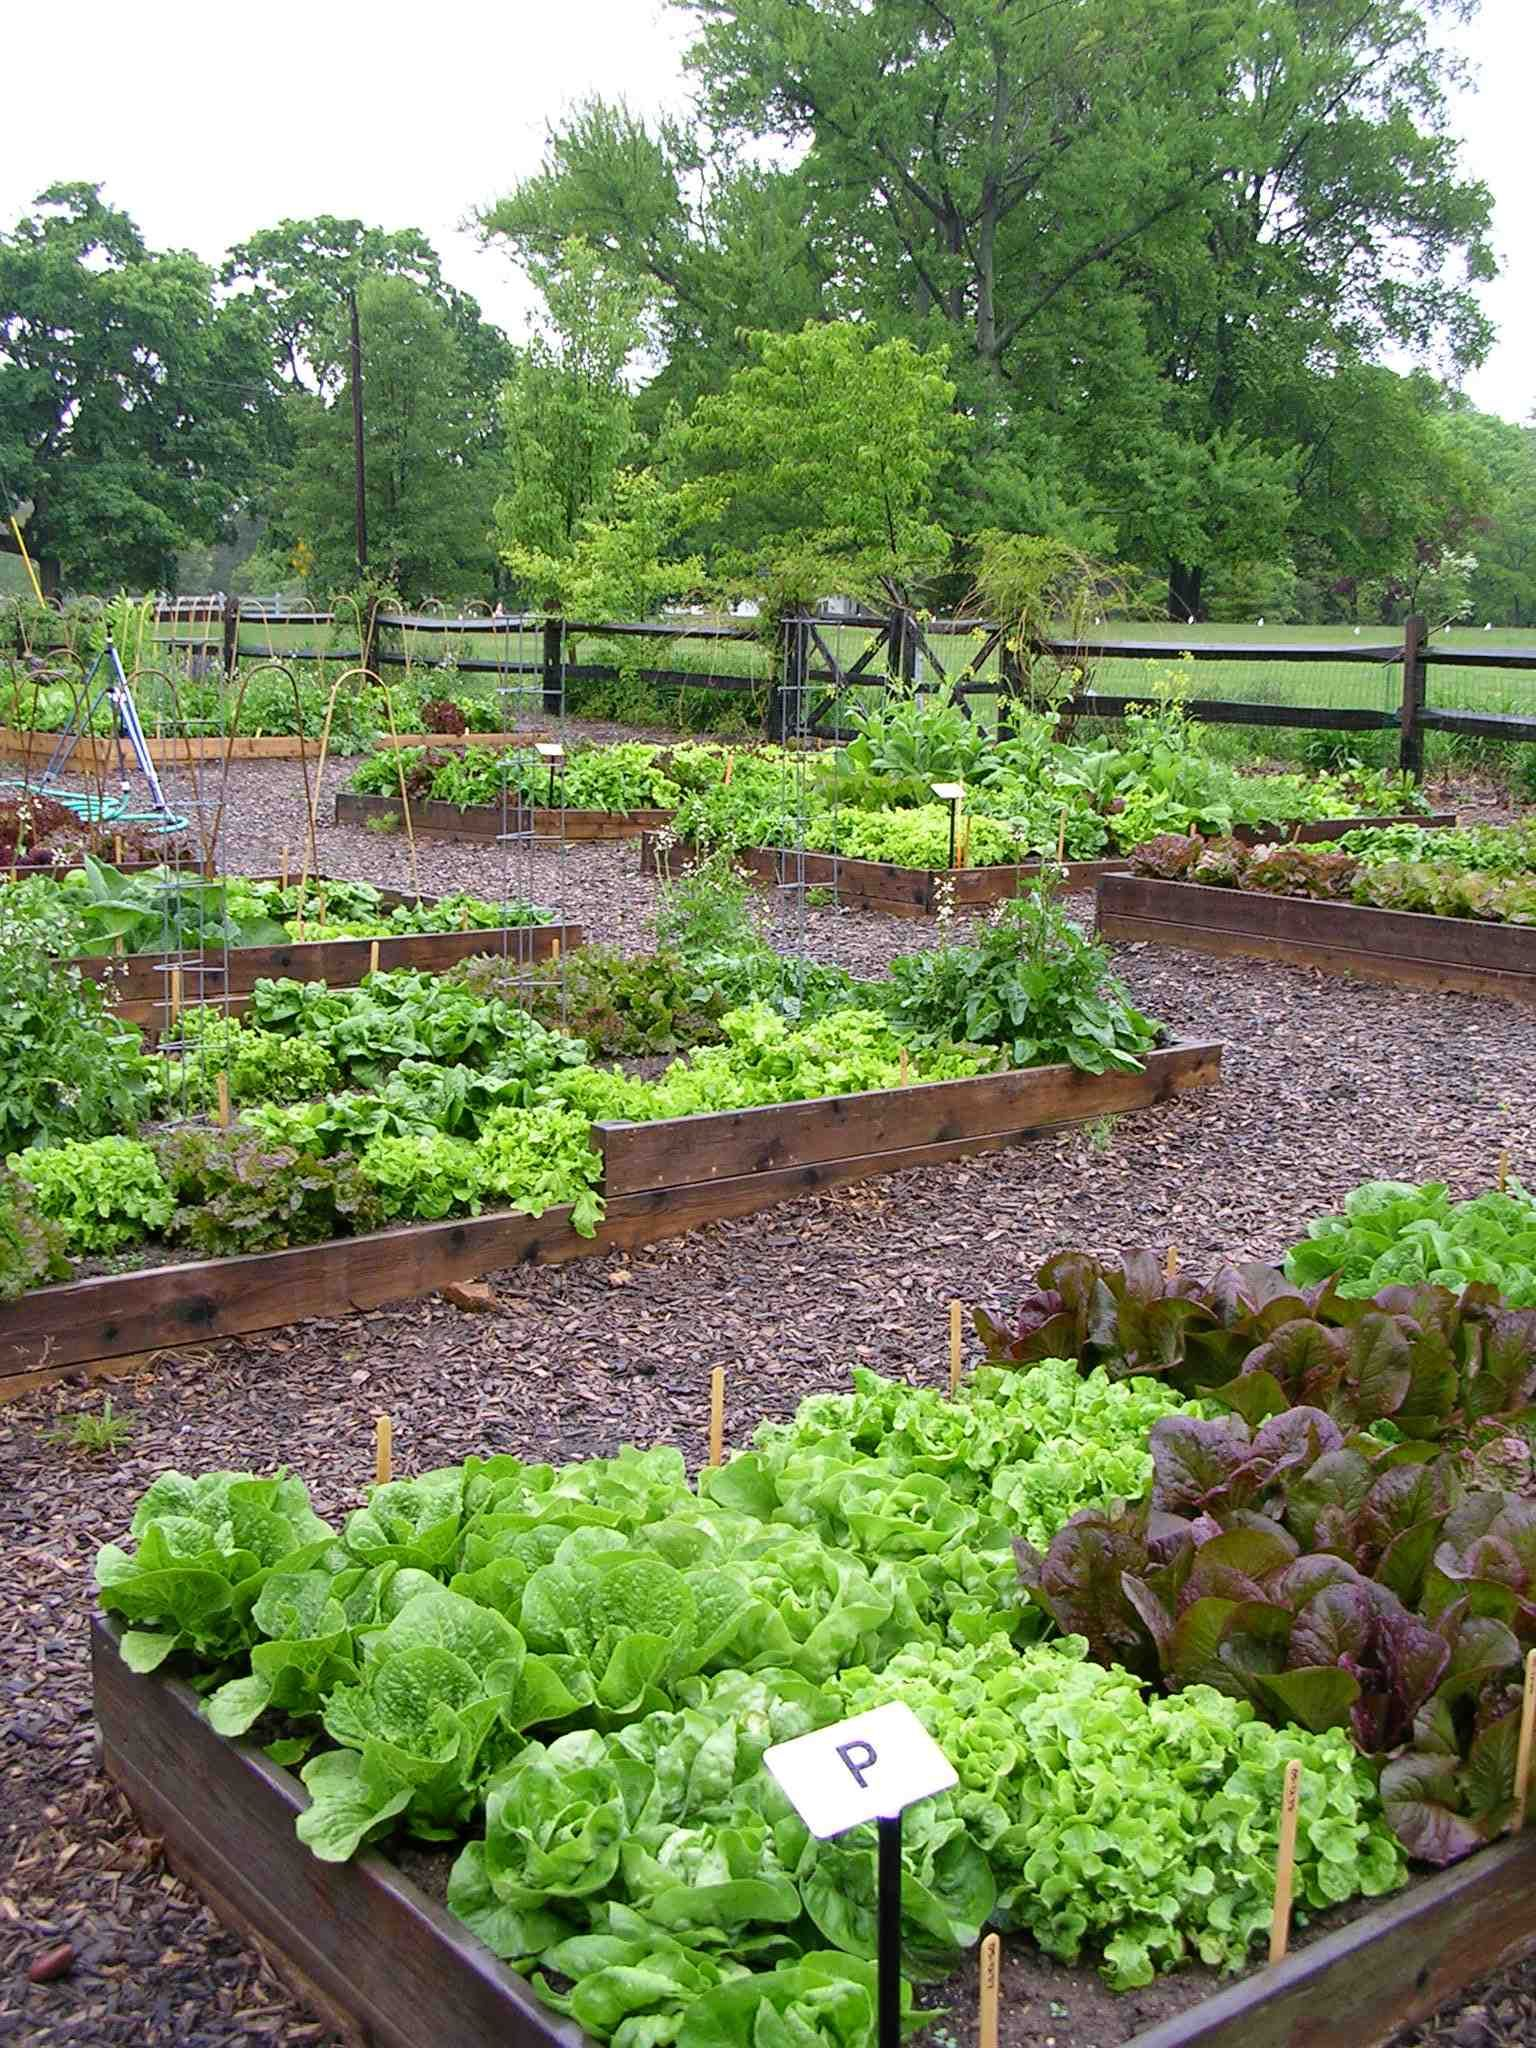 growing greens in the kitchen garden designs and recipes for cooks who love to garden www on kitchen garden id=13741